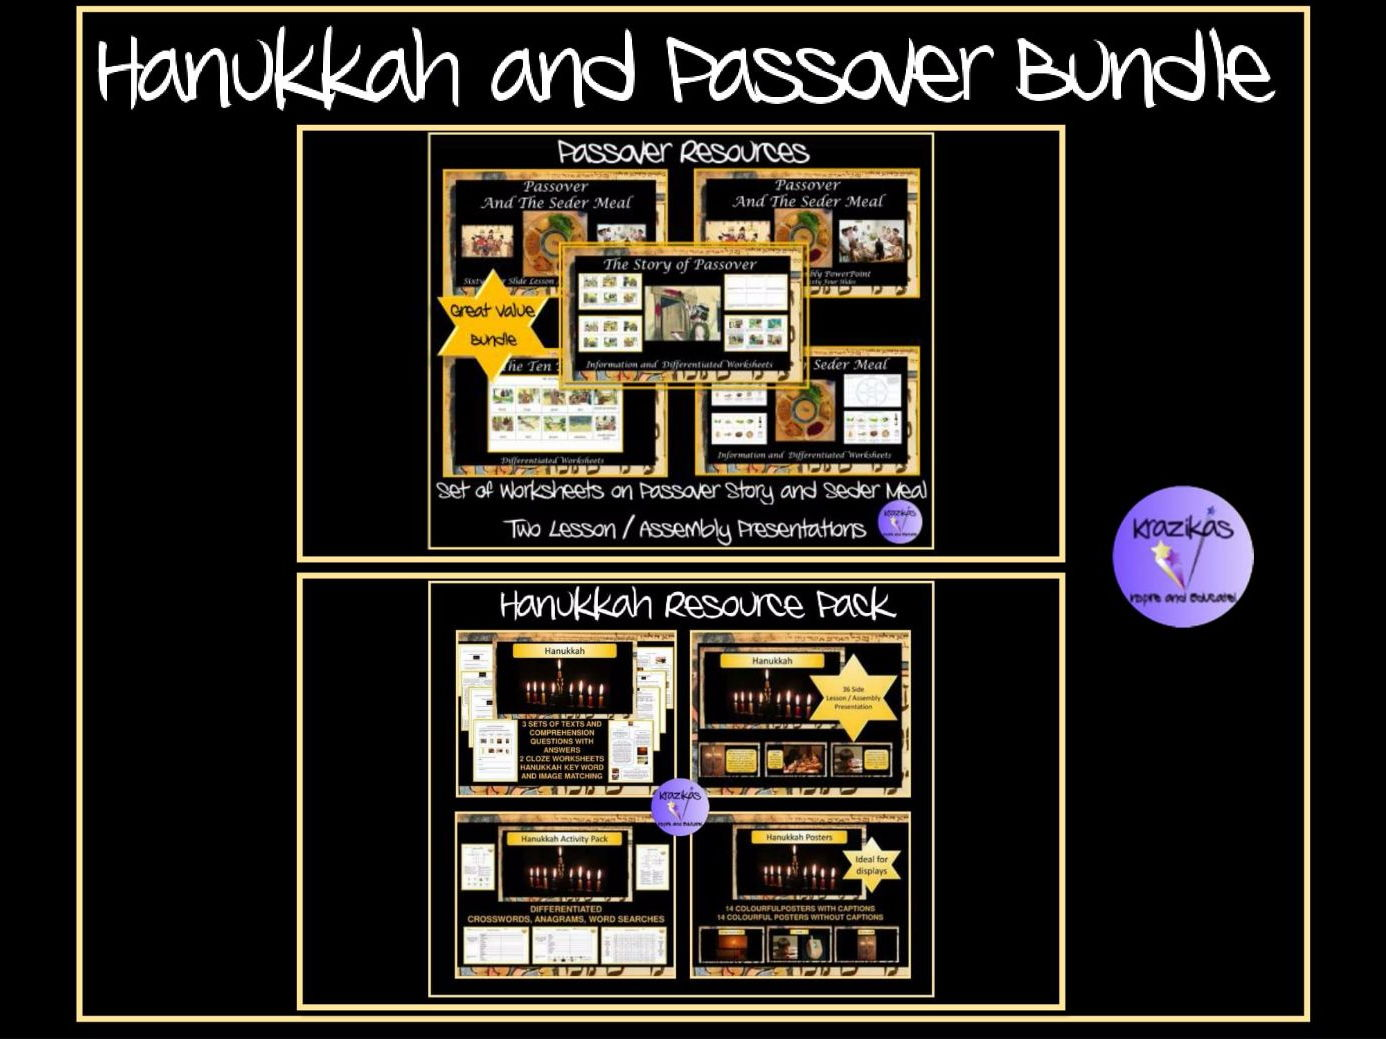 Passover and Hanukkah: Bundle 9 Resources